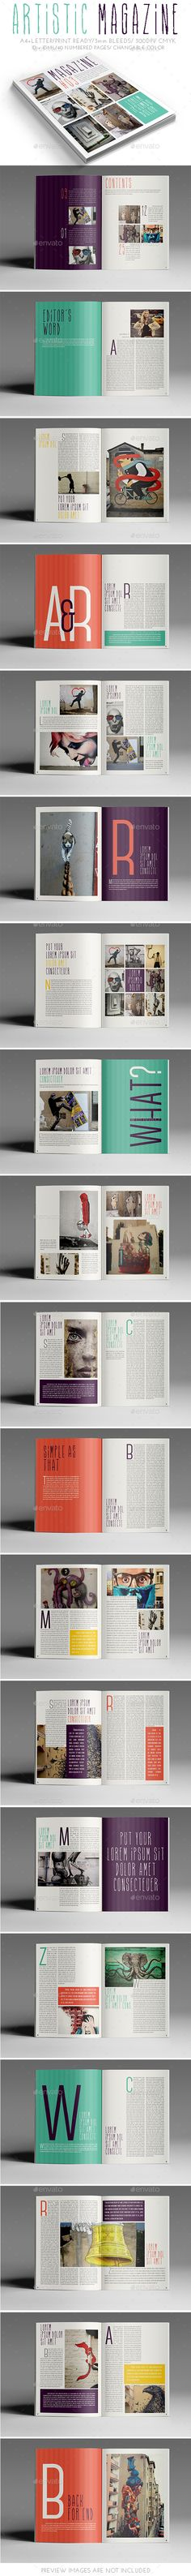 Artistic Magazine Template | #magazinetemplate | Download: http://graphicriver.net/item/artistic-magazine/9764394?ref=ksioks